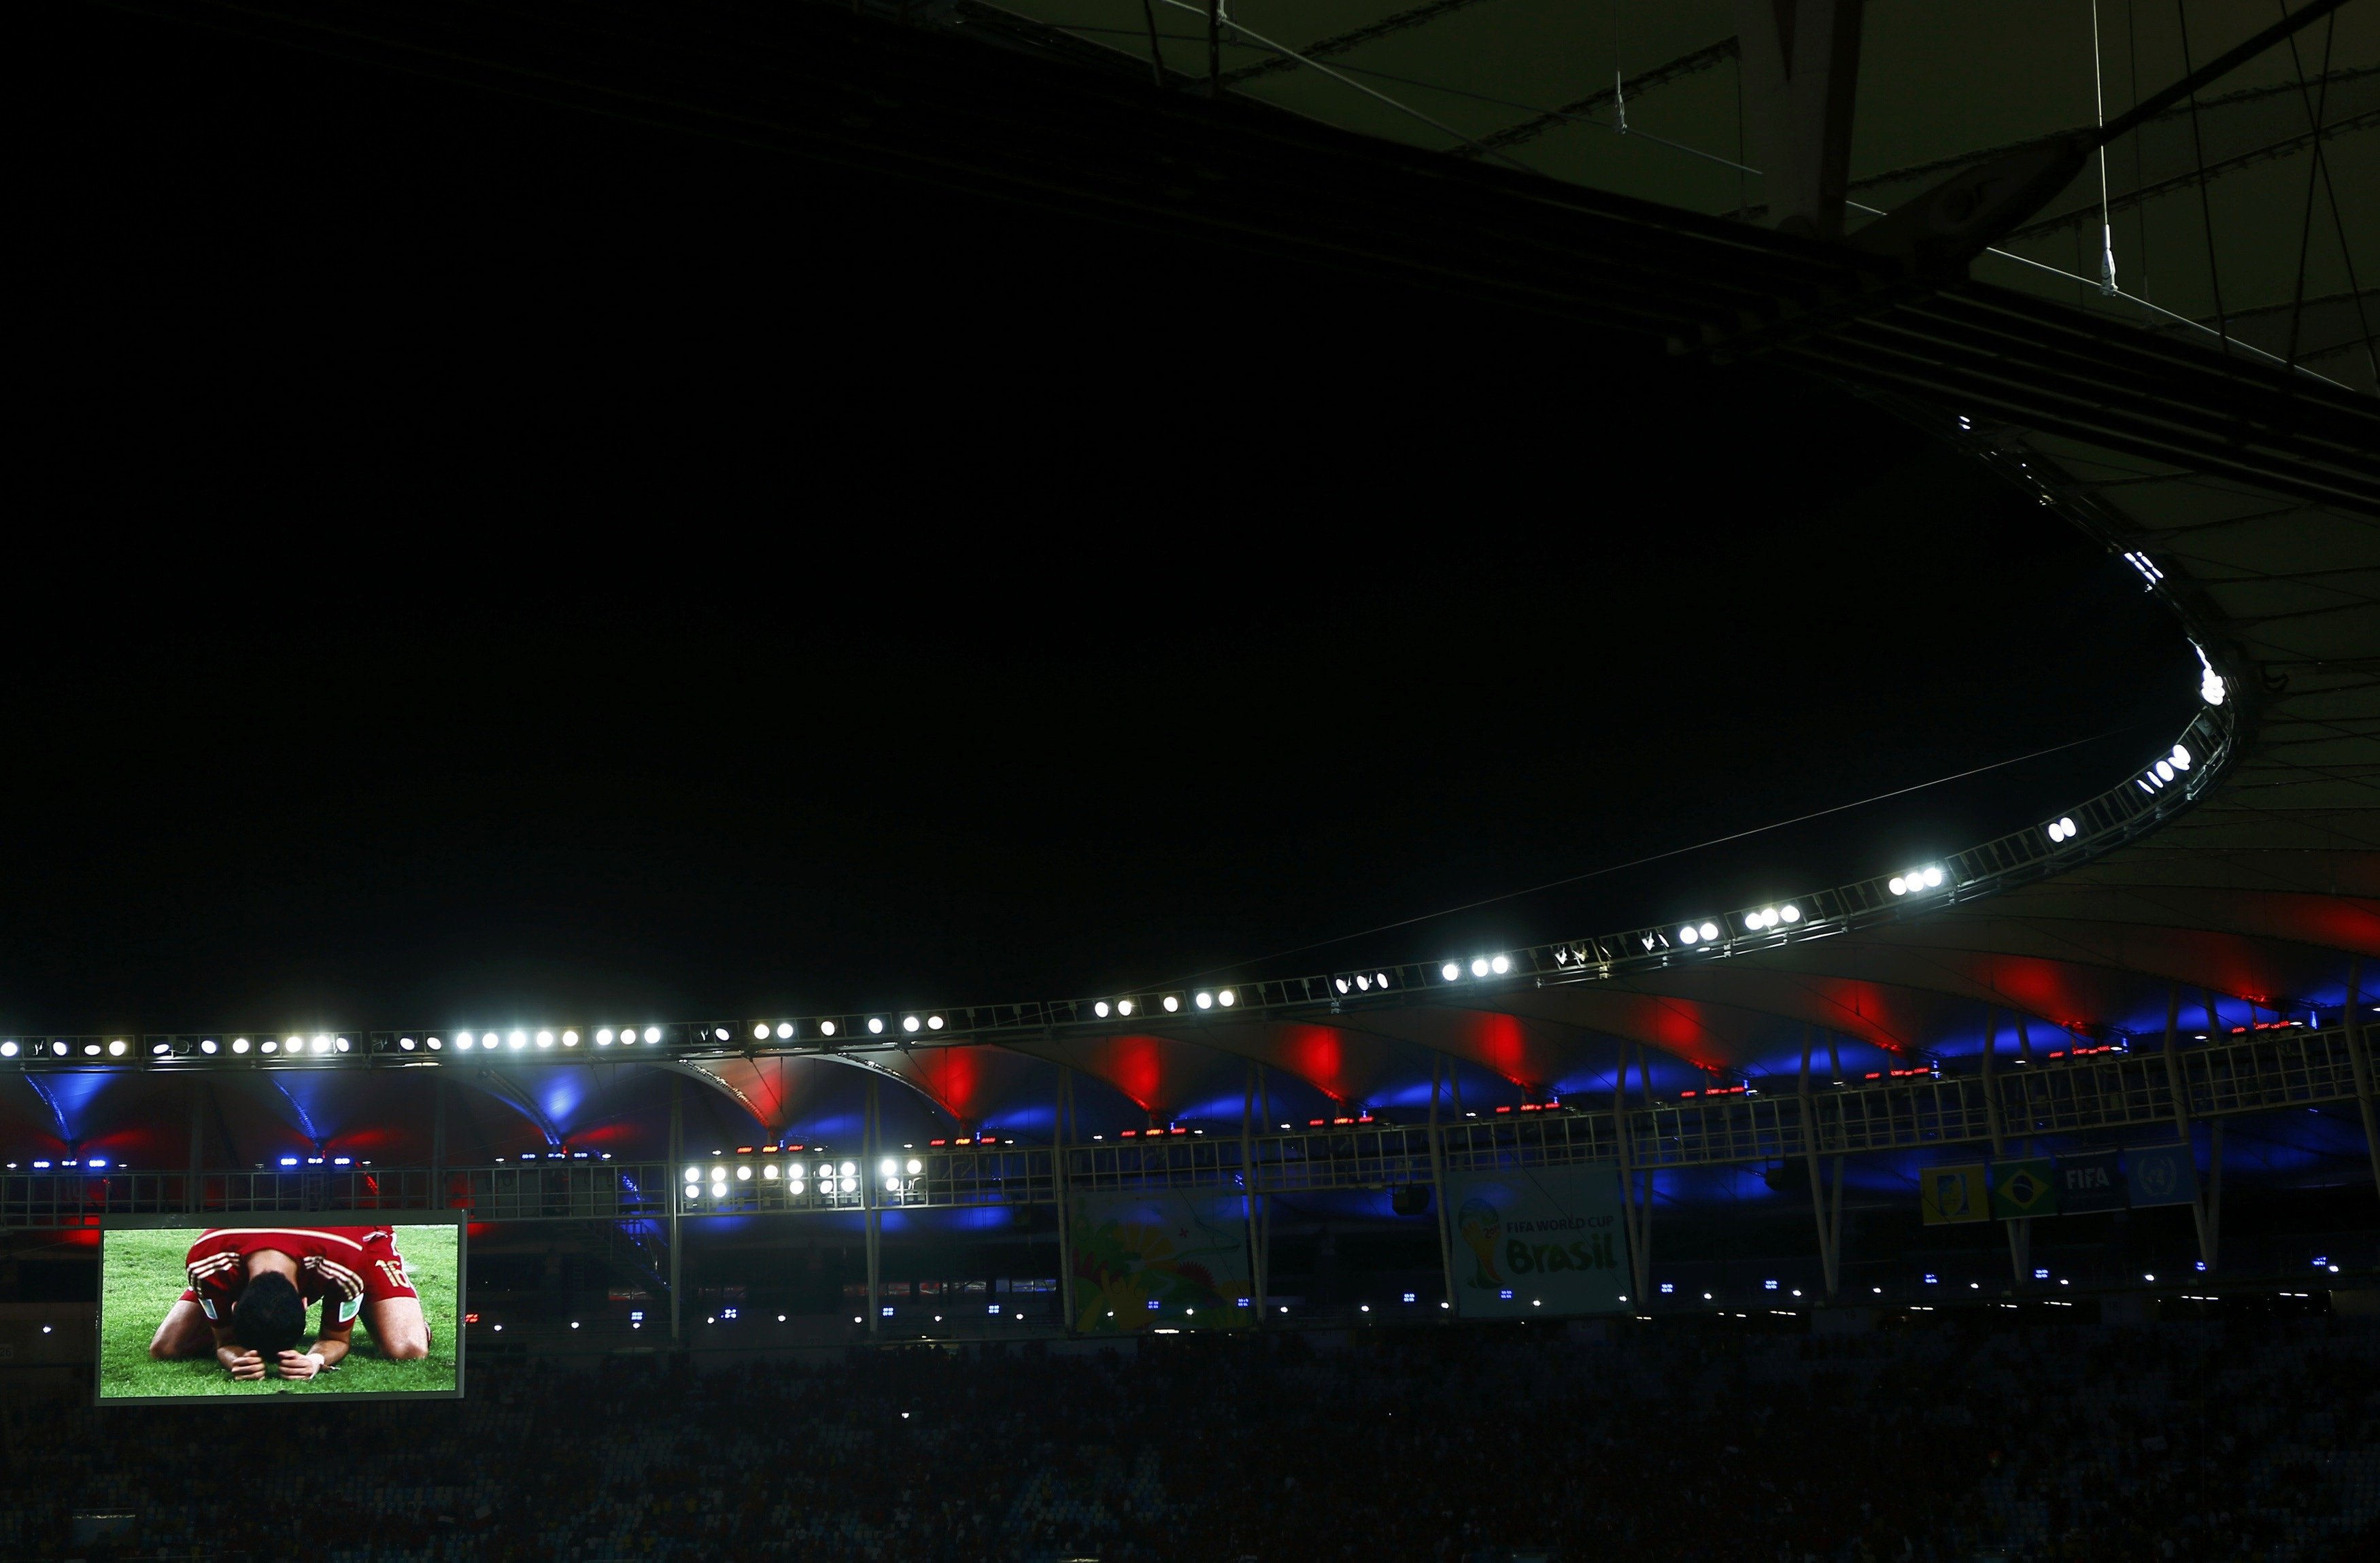 Match highlights are screened after the 2014 World Cup Group B soccer match between Spain and Chile at the Maracana stadium in Rio de Janeiro on June 18, 2014.